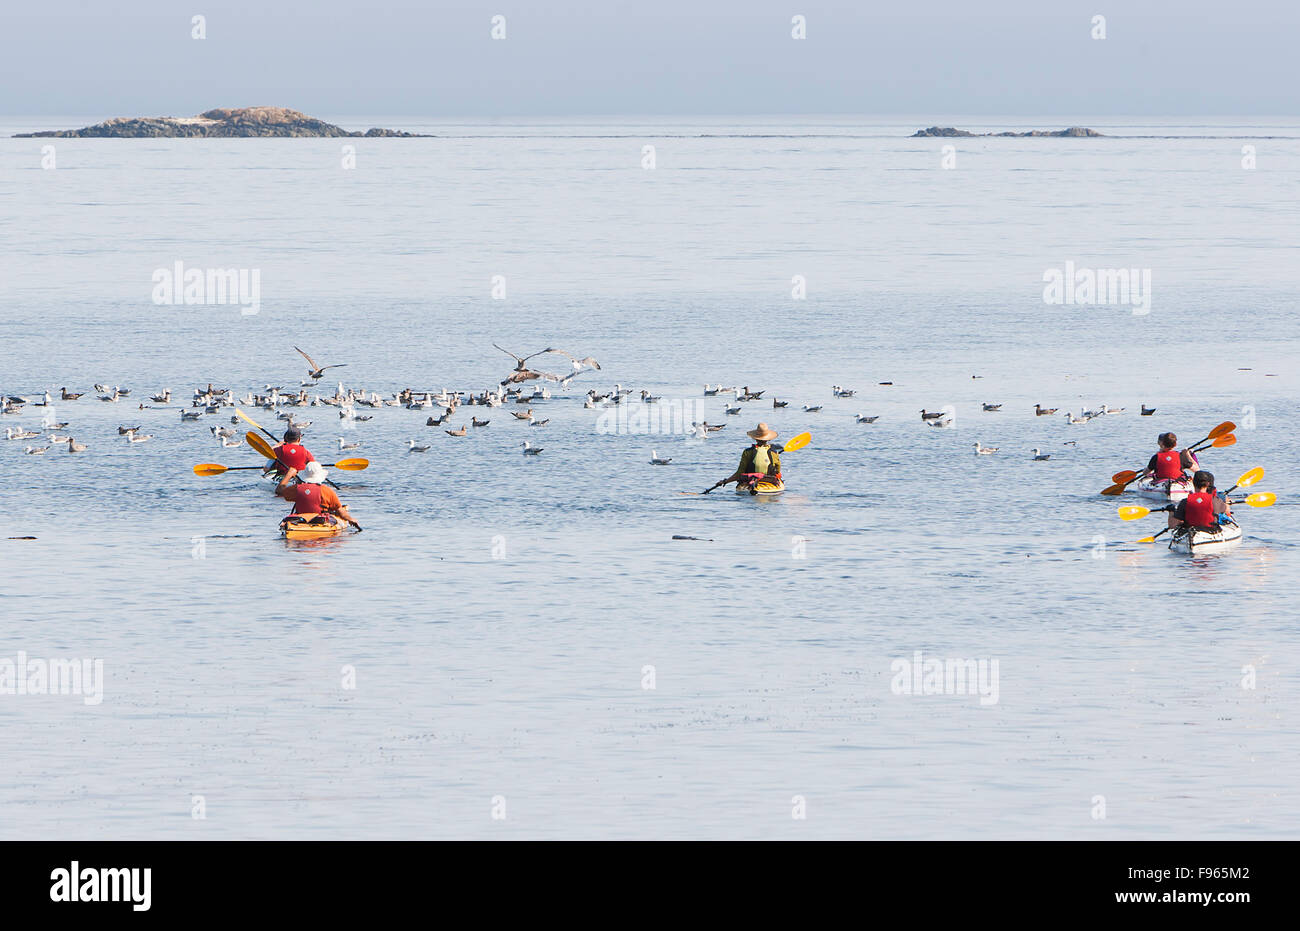 Kayakers head out of Telegraph Cove for a day's paddle on the waters of Johnstone Strait. - Stock Image